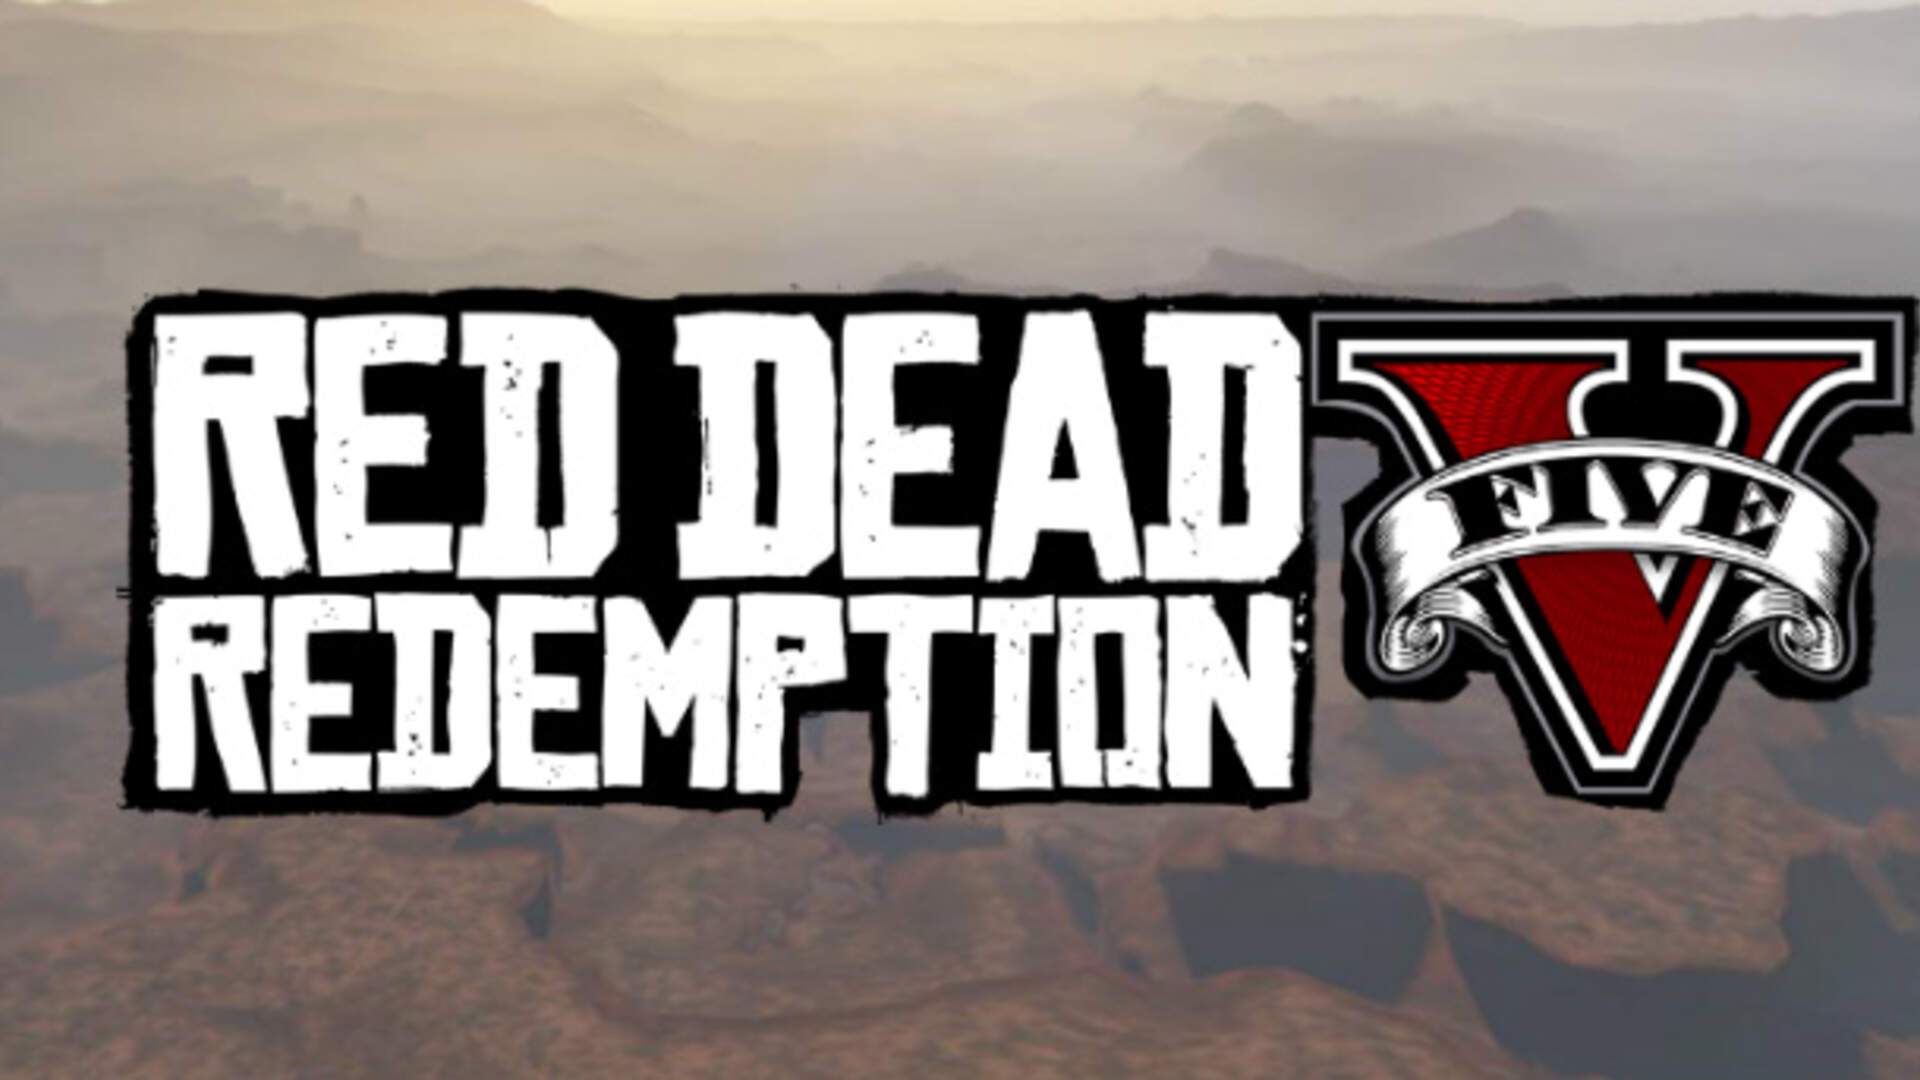 Modders Take A Shot At Recreating Red Dead Redemption in GTA V